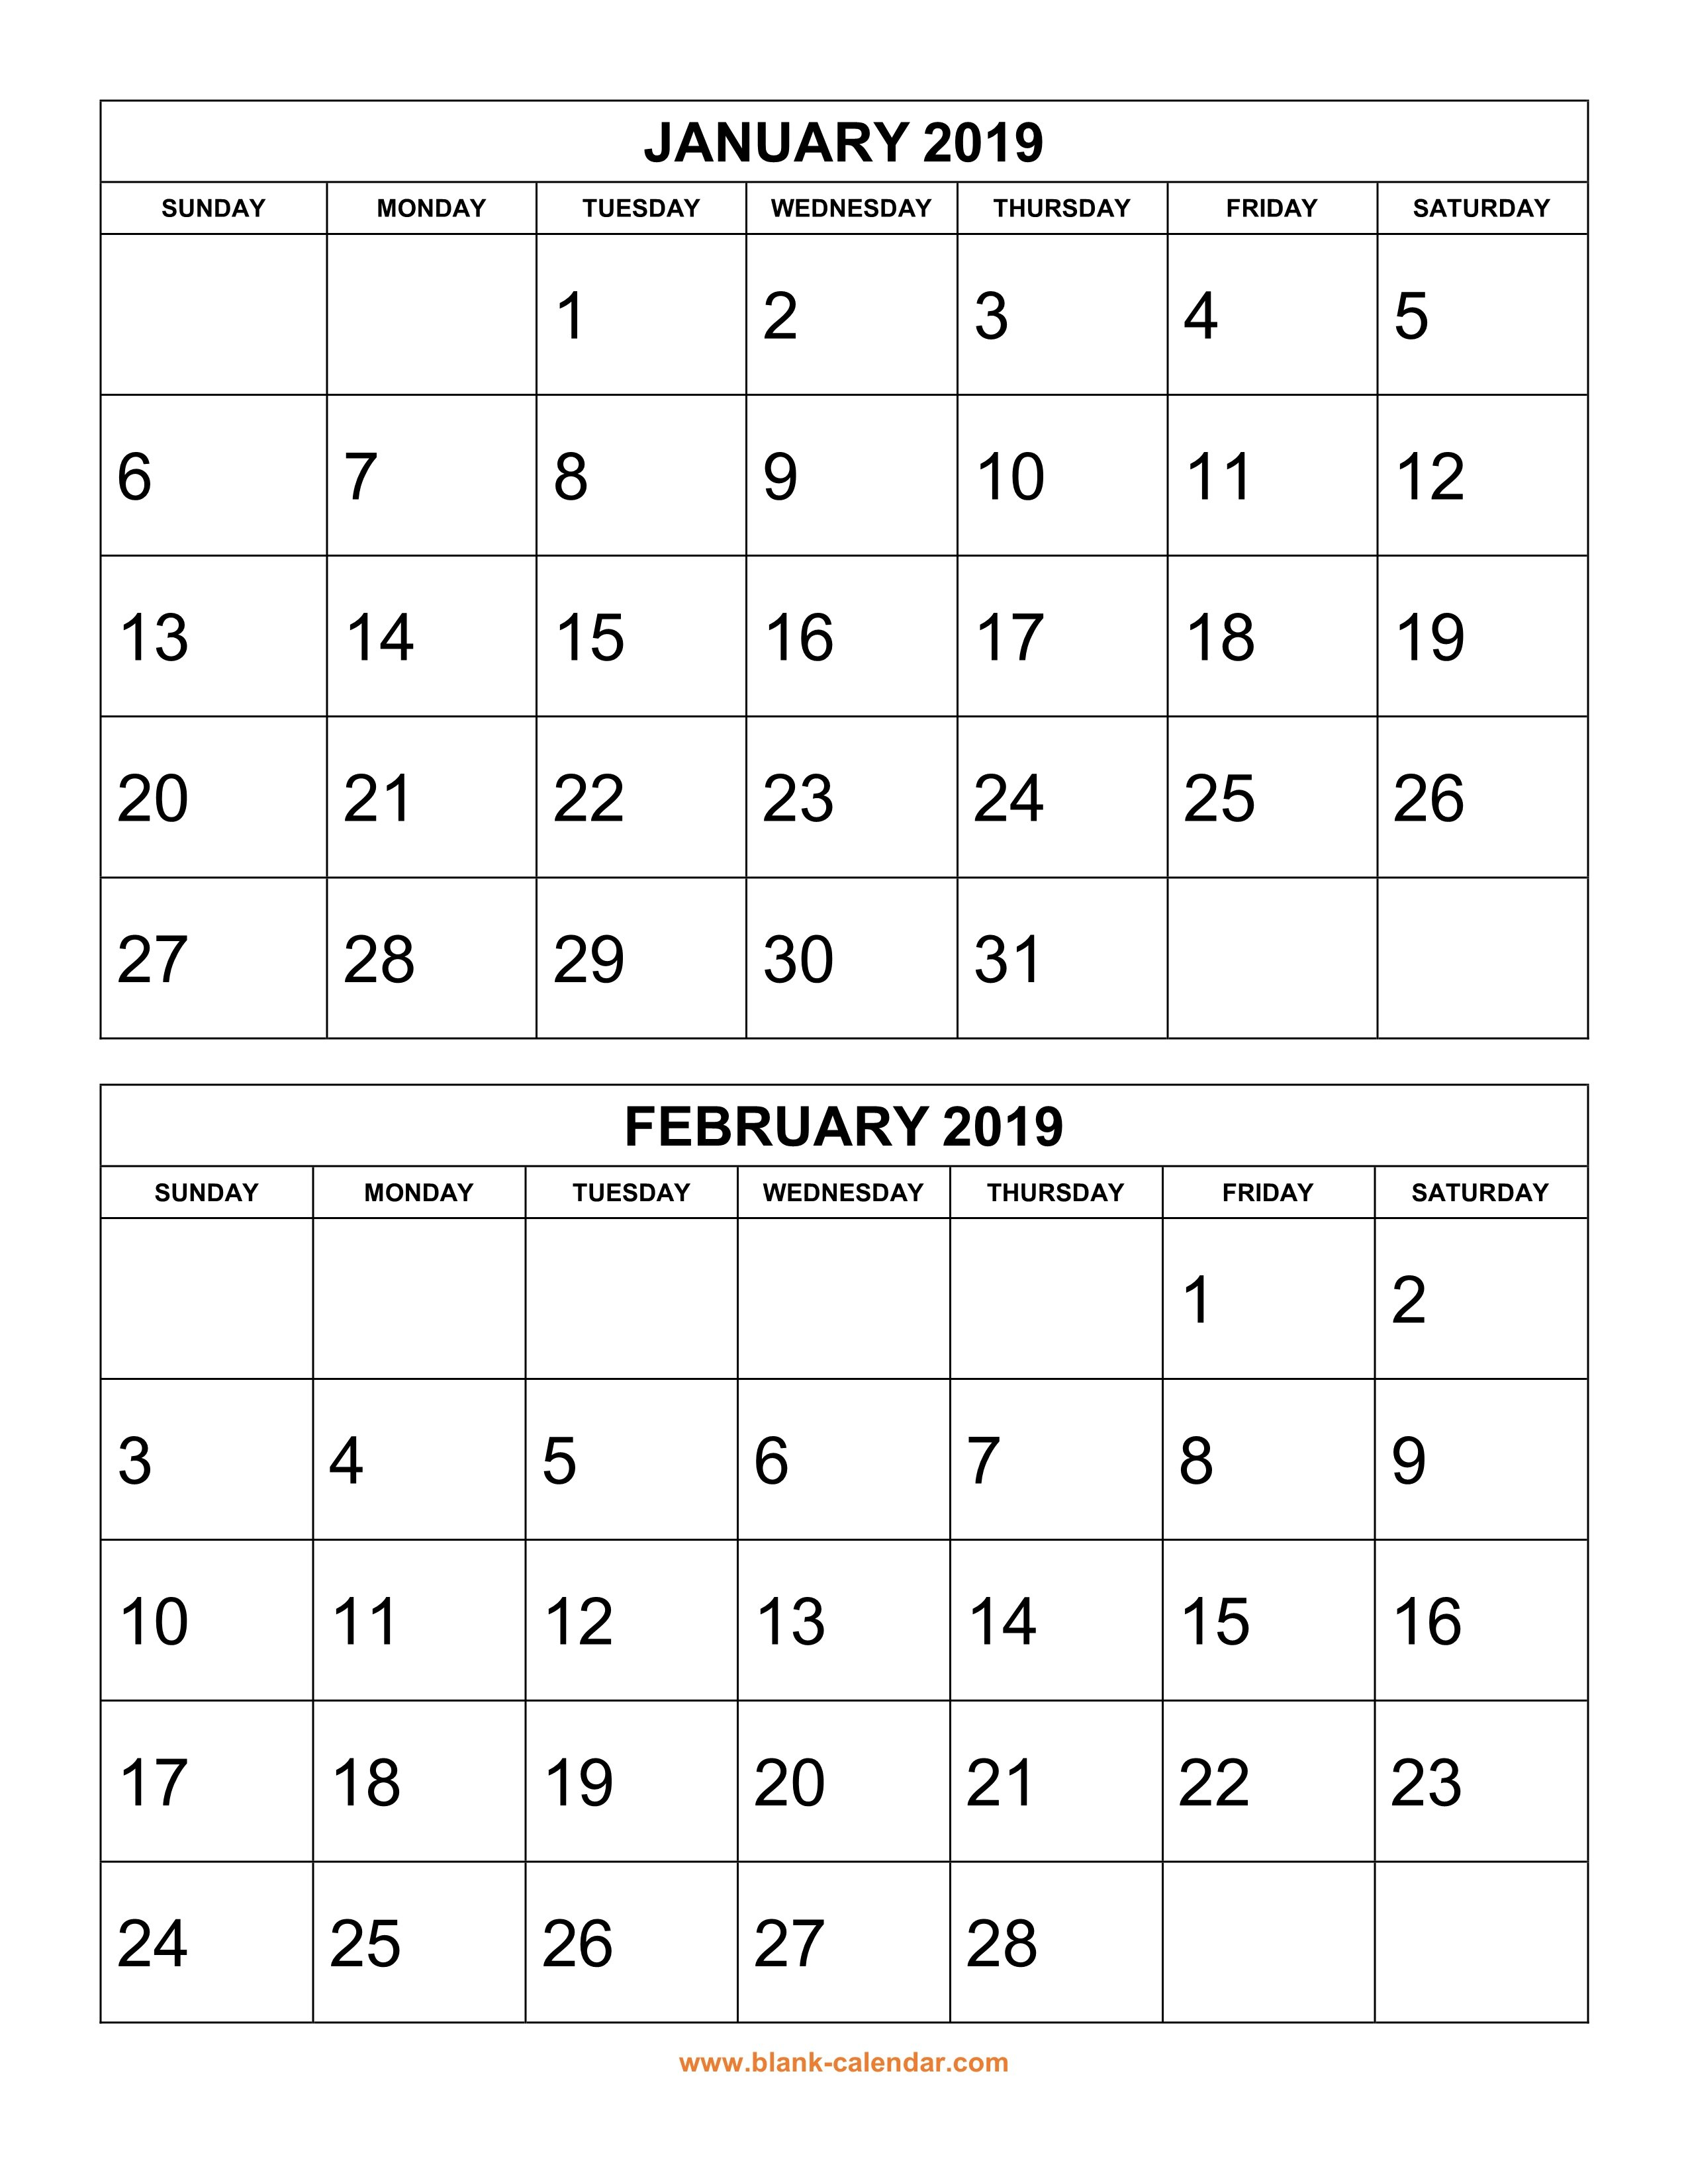 Free Download Printable Calendar 2019, 2 Months Per Page, 6 Pages Calendar 2019 Free